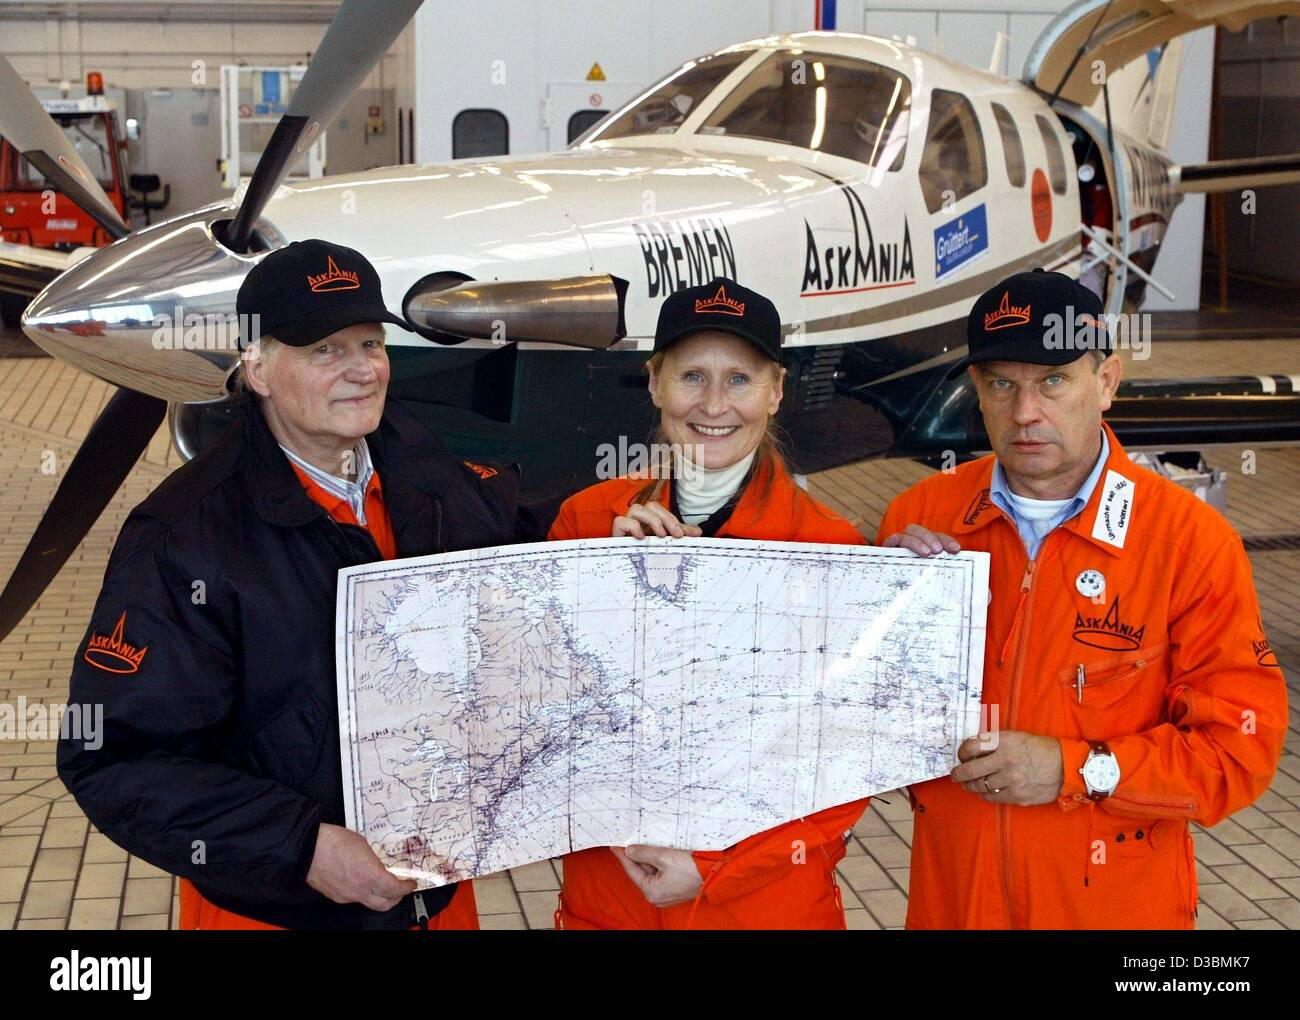 (dpa) - The expert for transatlantic flights, ferry pilot Magret Waltz, poses with Volker Schmidt (R) and Norwig - Stock Image